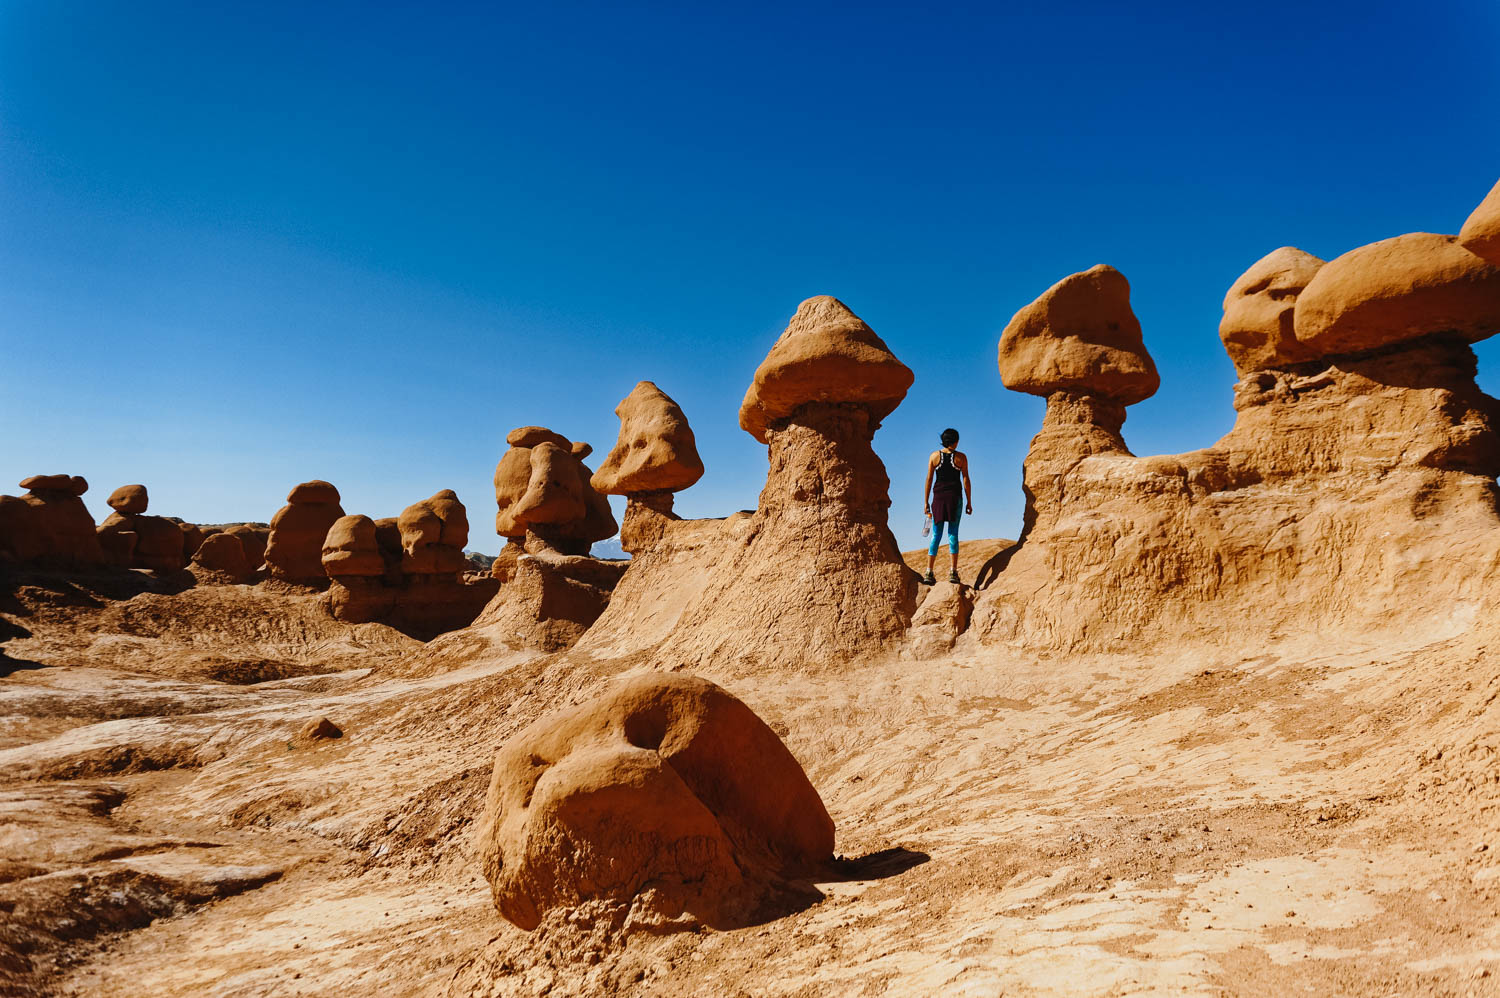 Walking through Goblin Valley is a must! Go early or even better, at sunset, to beat the crowd.